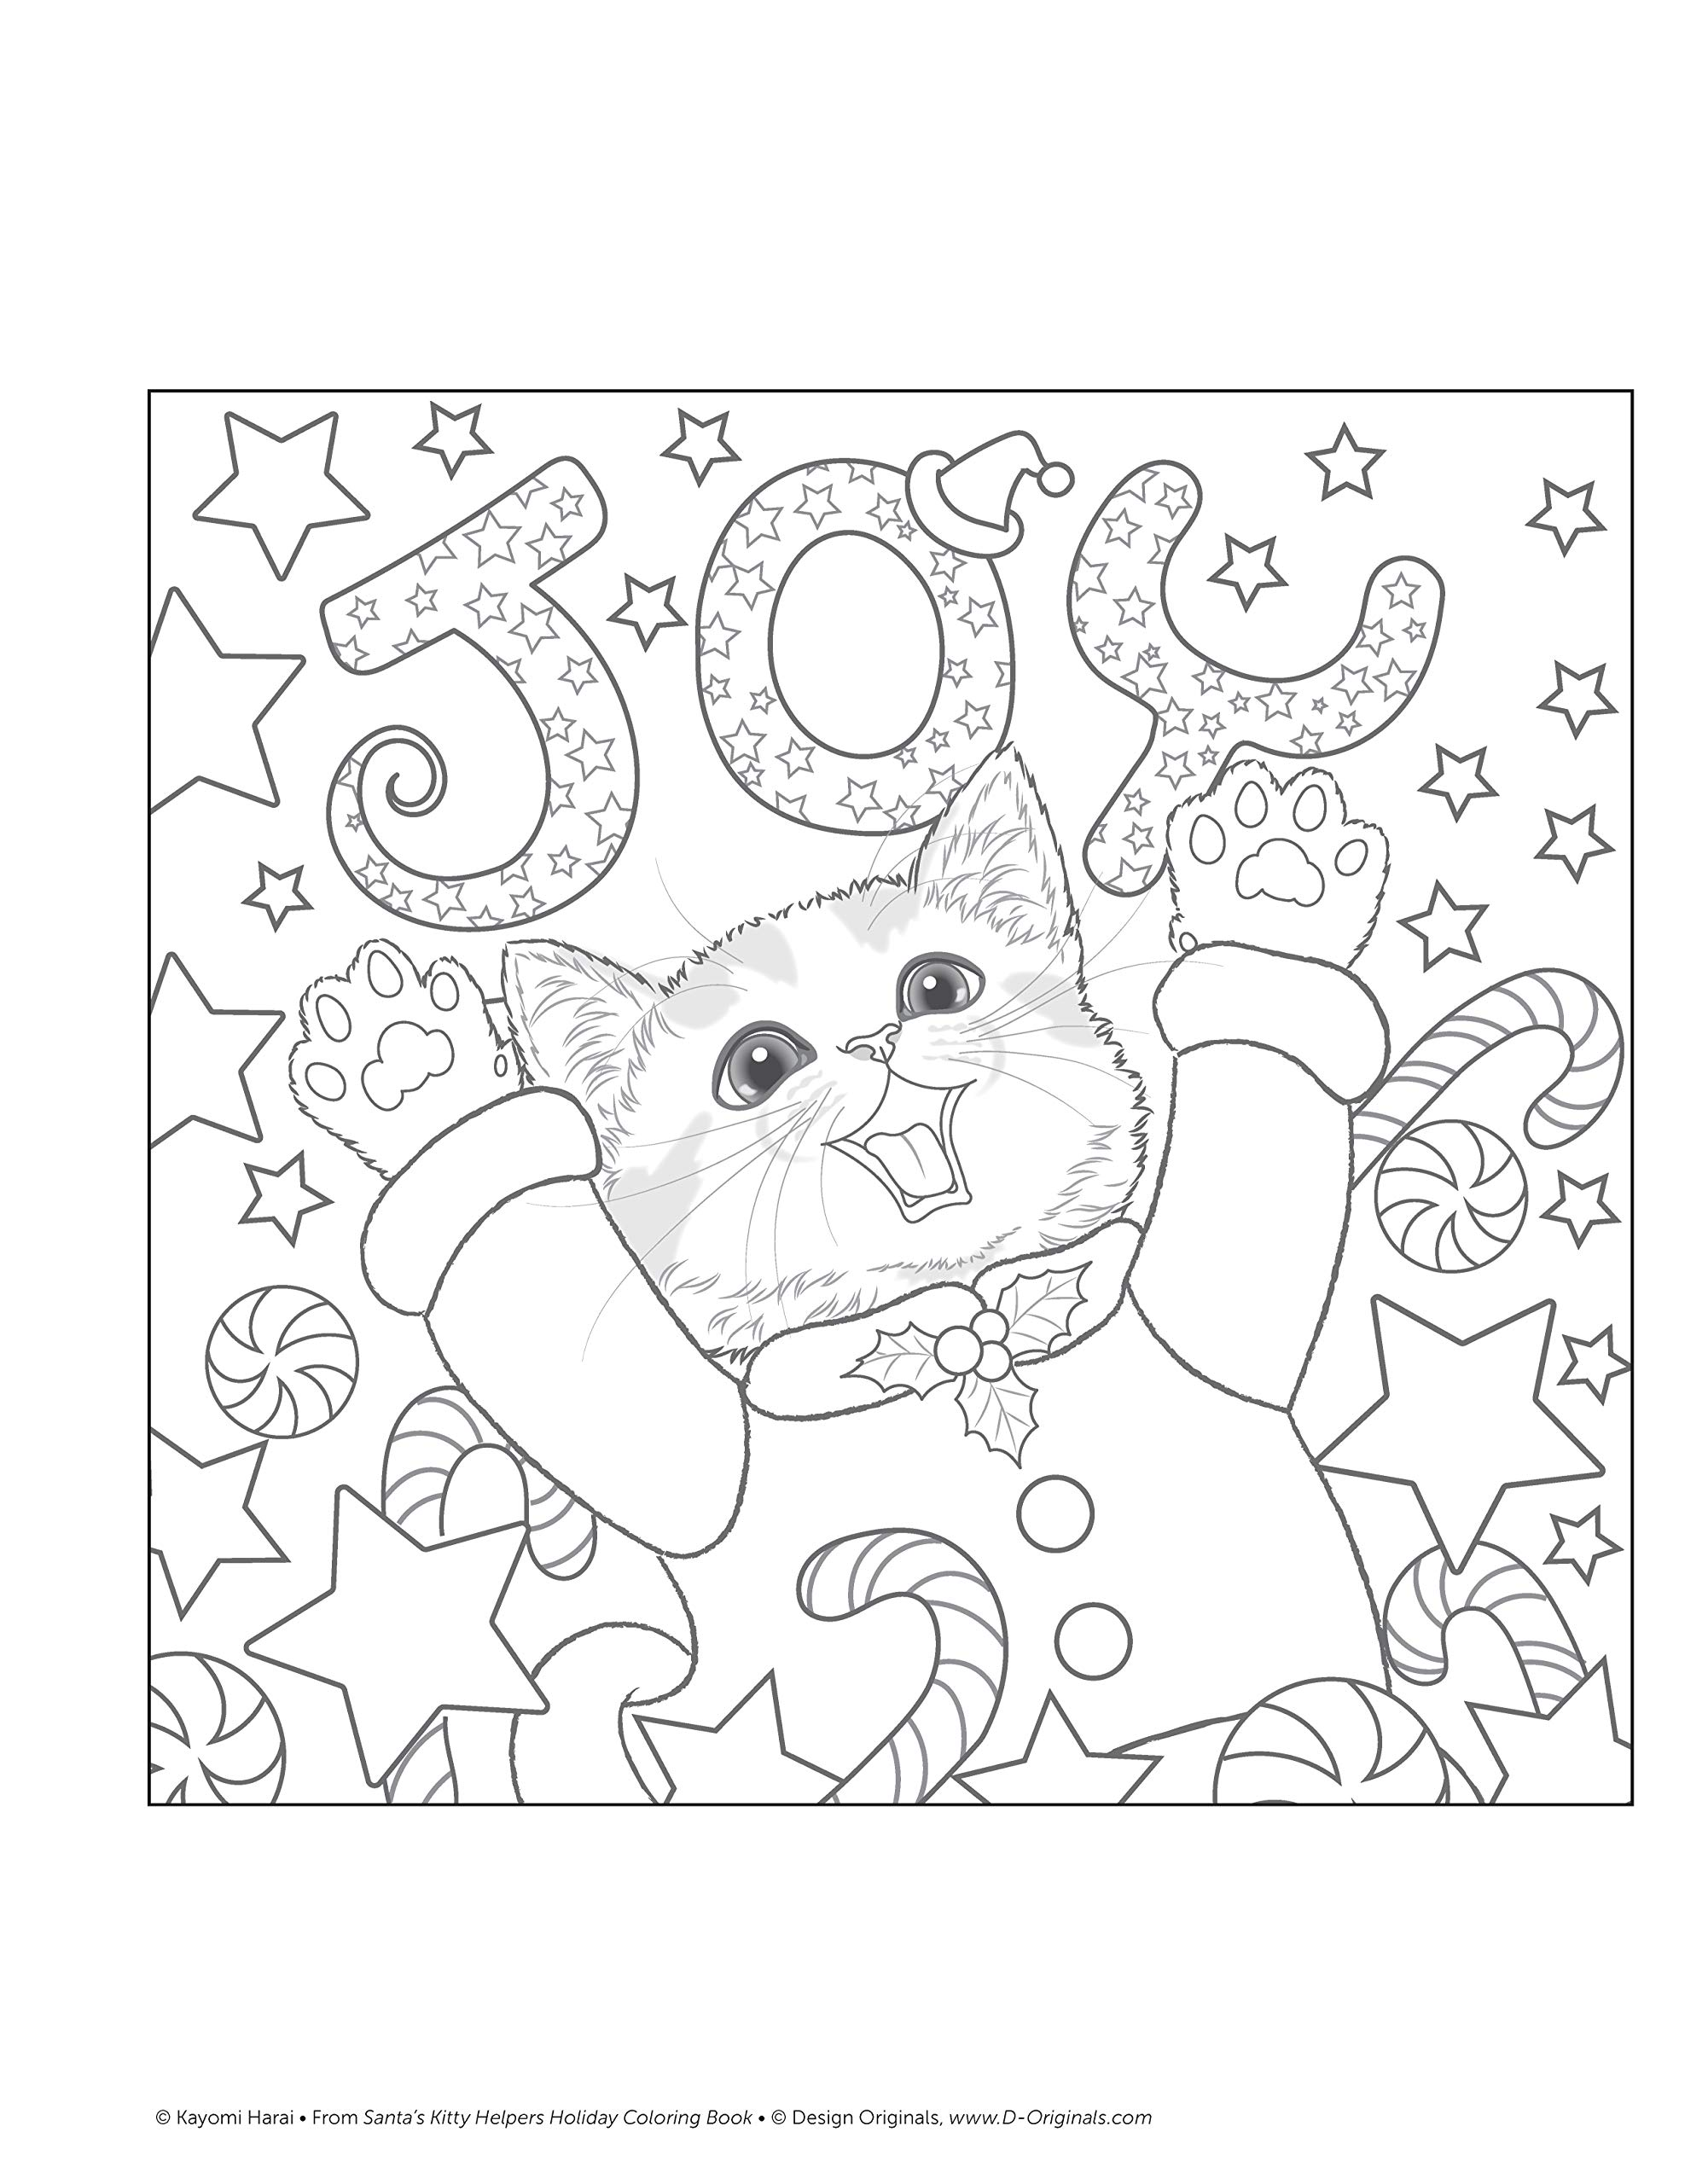 - Santa's Kitty Helpers Holiday Coloring Book Design Originals